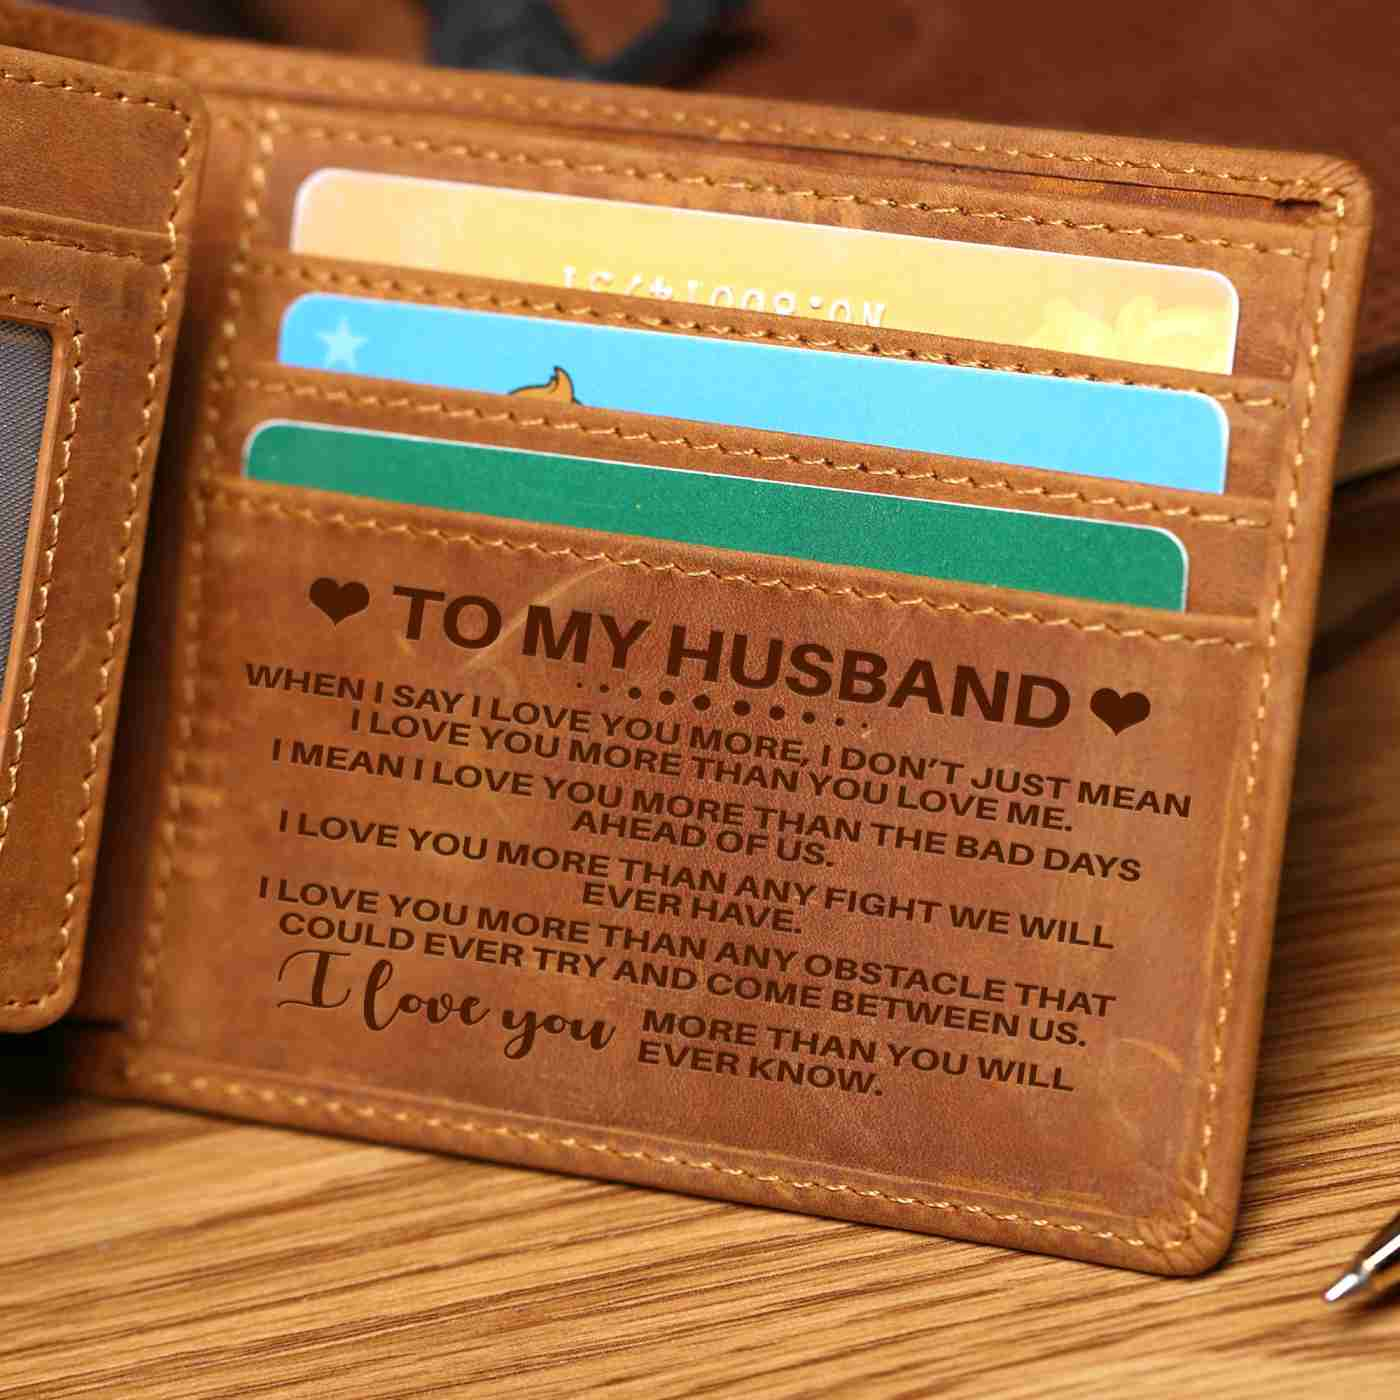 To My Husband- I love you more than you will ever know - Bi Fold Wallet